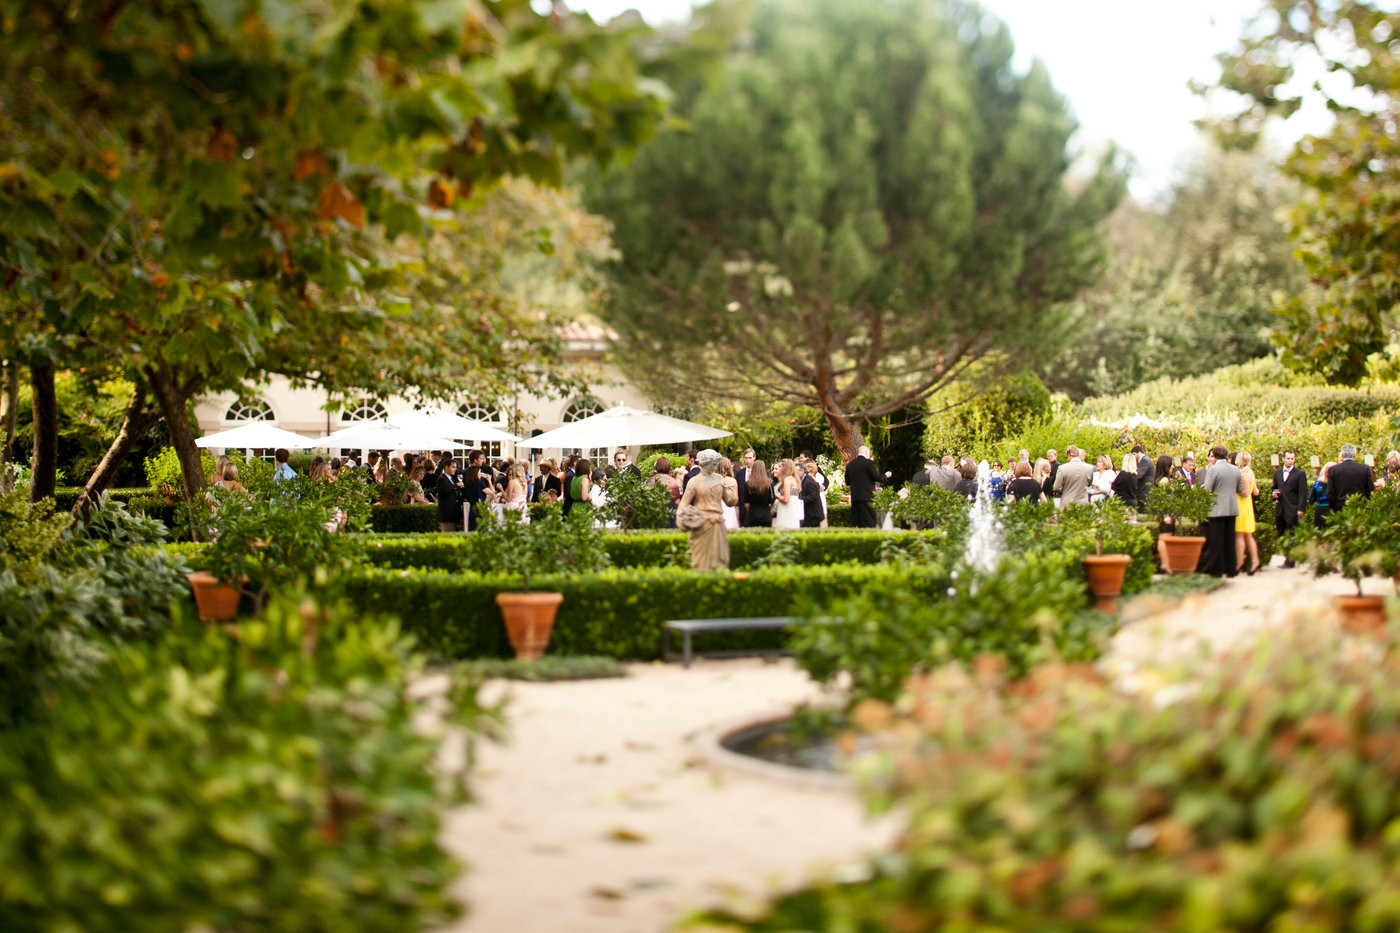 sonomaweddingvenue-301.jpg